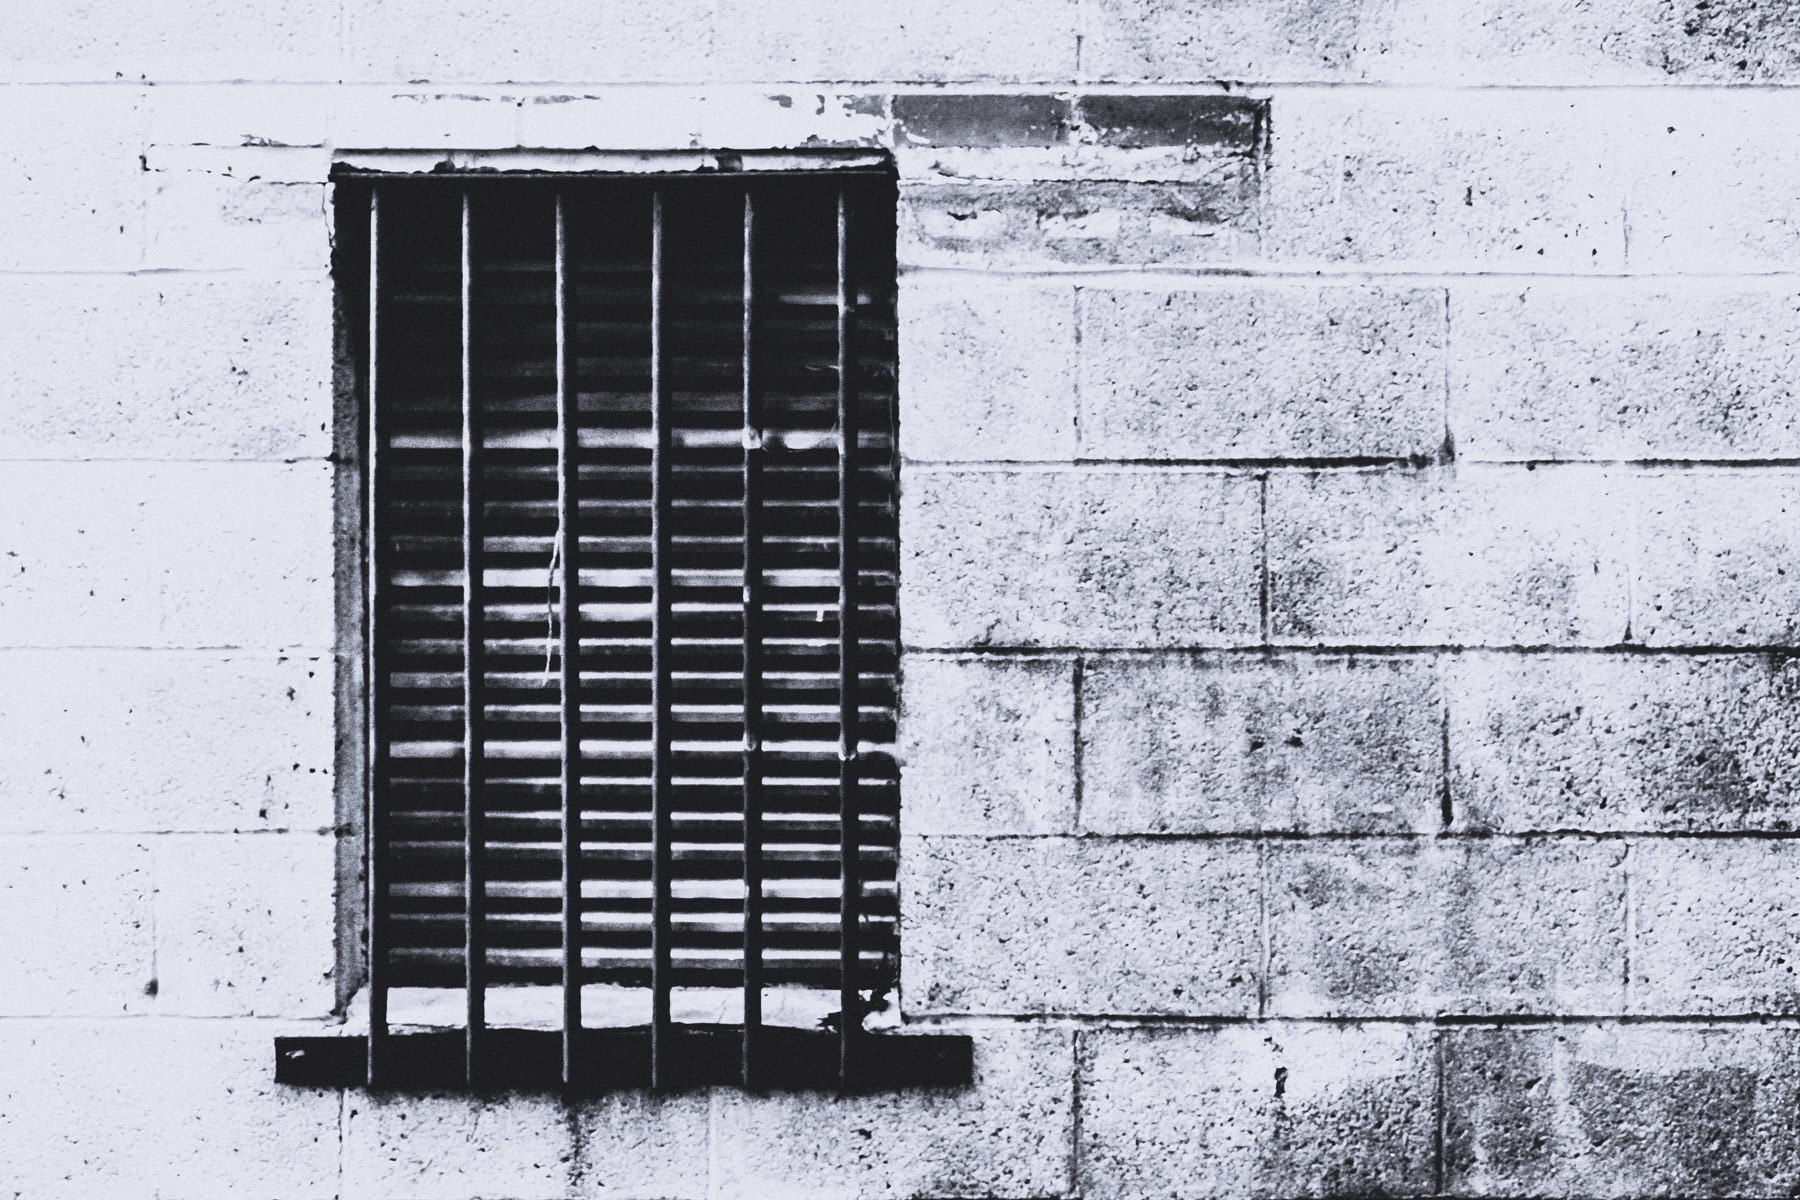 A window with bars over it in a back alley in Corsicana, Texas.